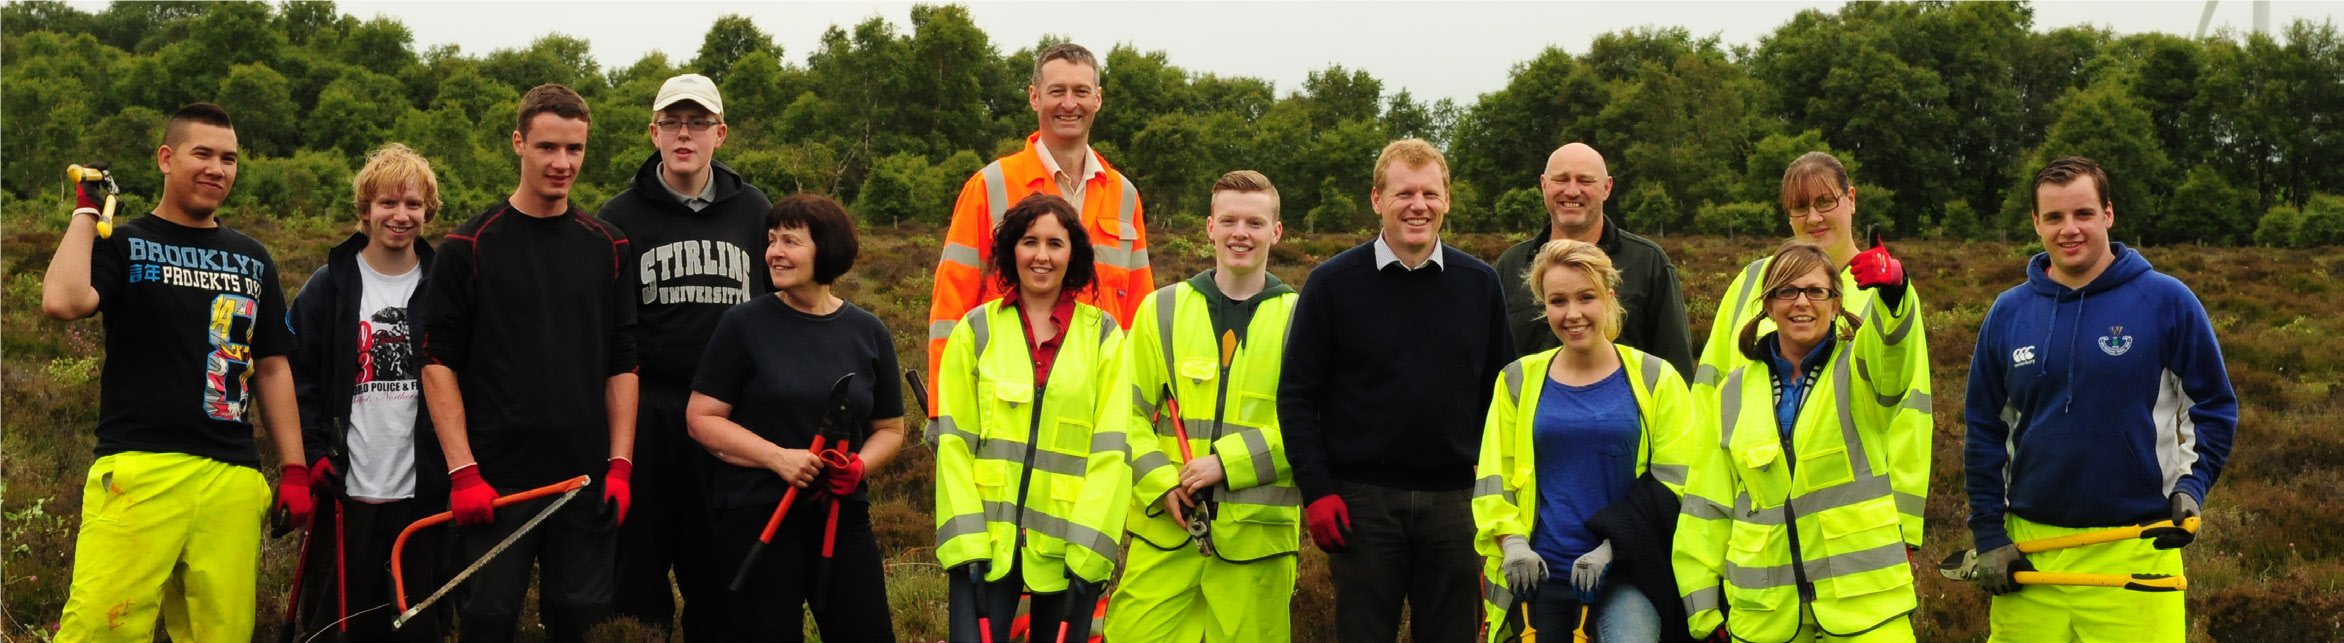 The M8 M73 M74 Motorway Improvements Project team volunteering with the Scottish Wildlife Trust at SSSI to preserve Cander Moss